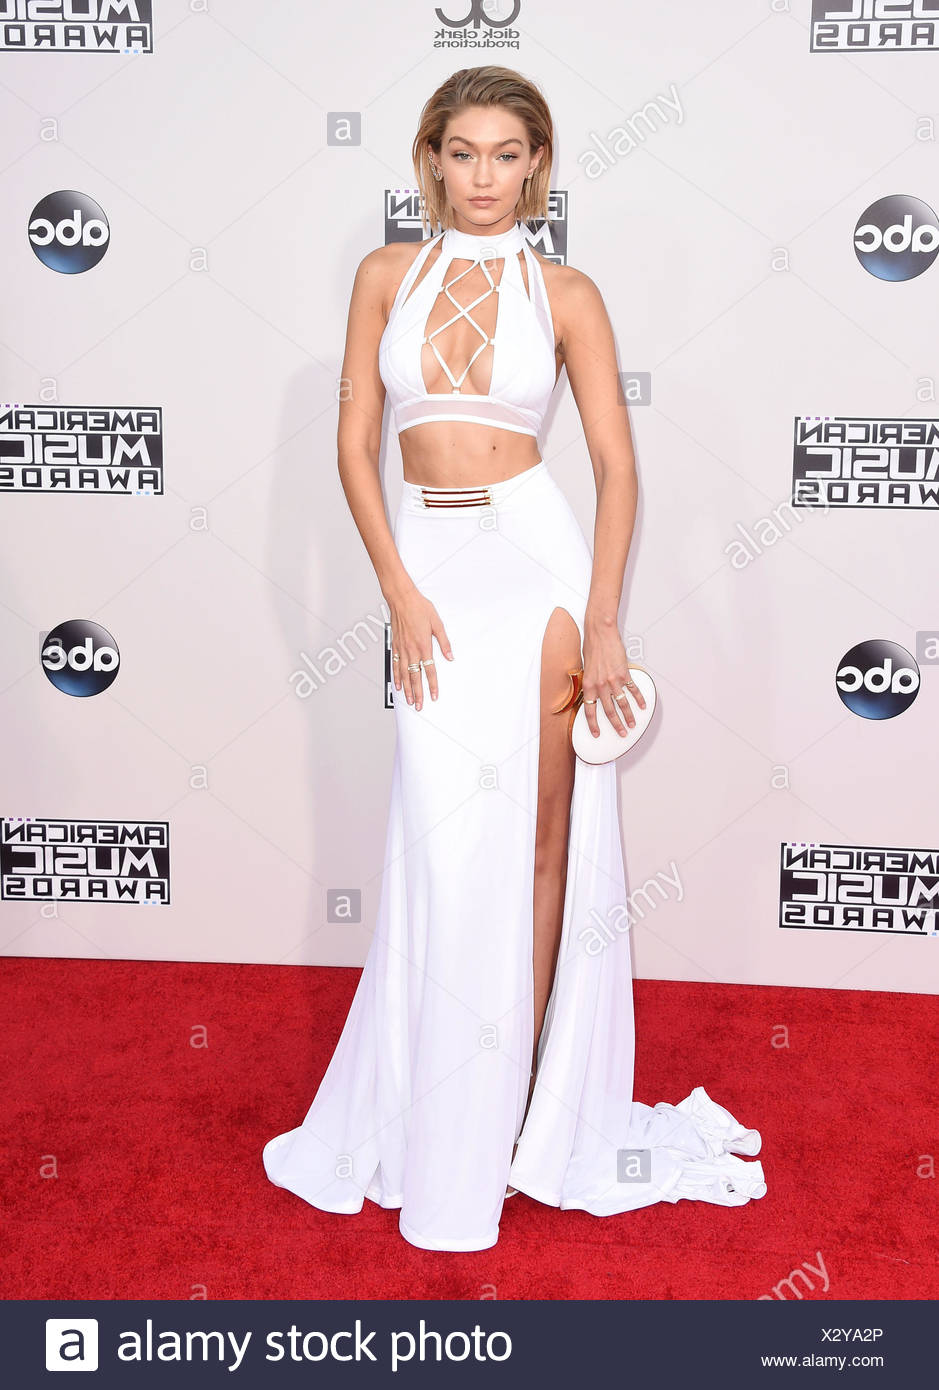 Model Gigi Hadid arrives at the 2015 American Music Awards at Microsoft Theater on November 22, 2015 in Los Angeles, California., Stock Photo